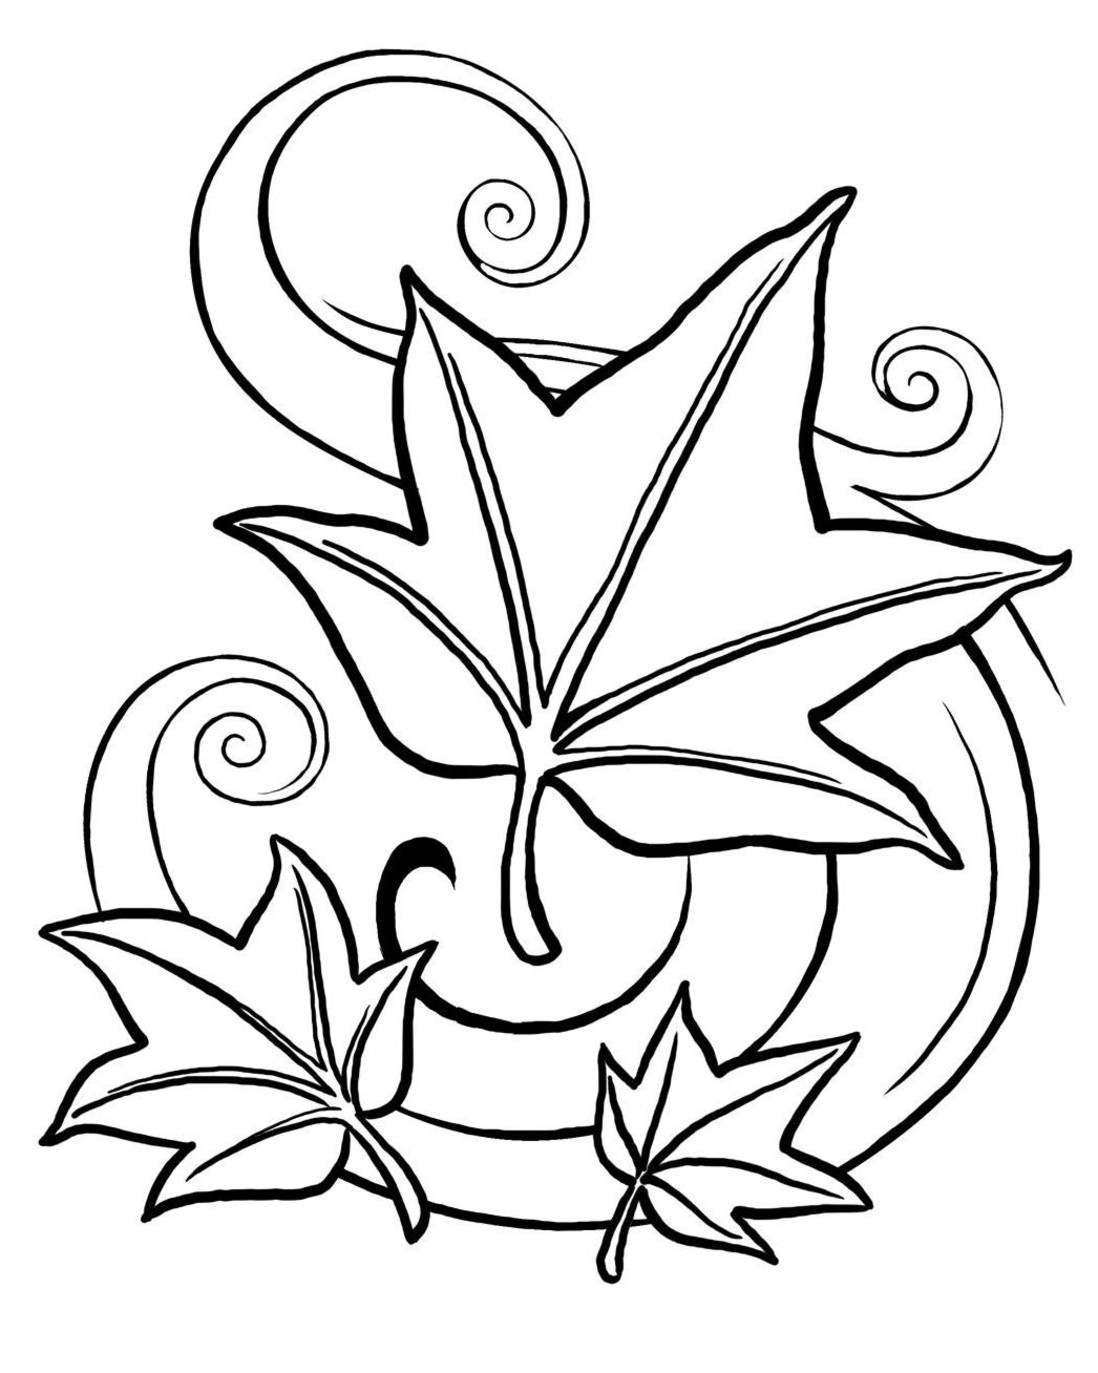 leaves coloring images clipart panda free clipart images coloring images leaves